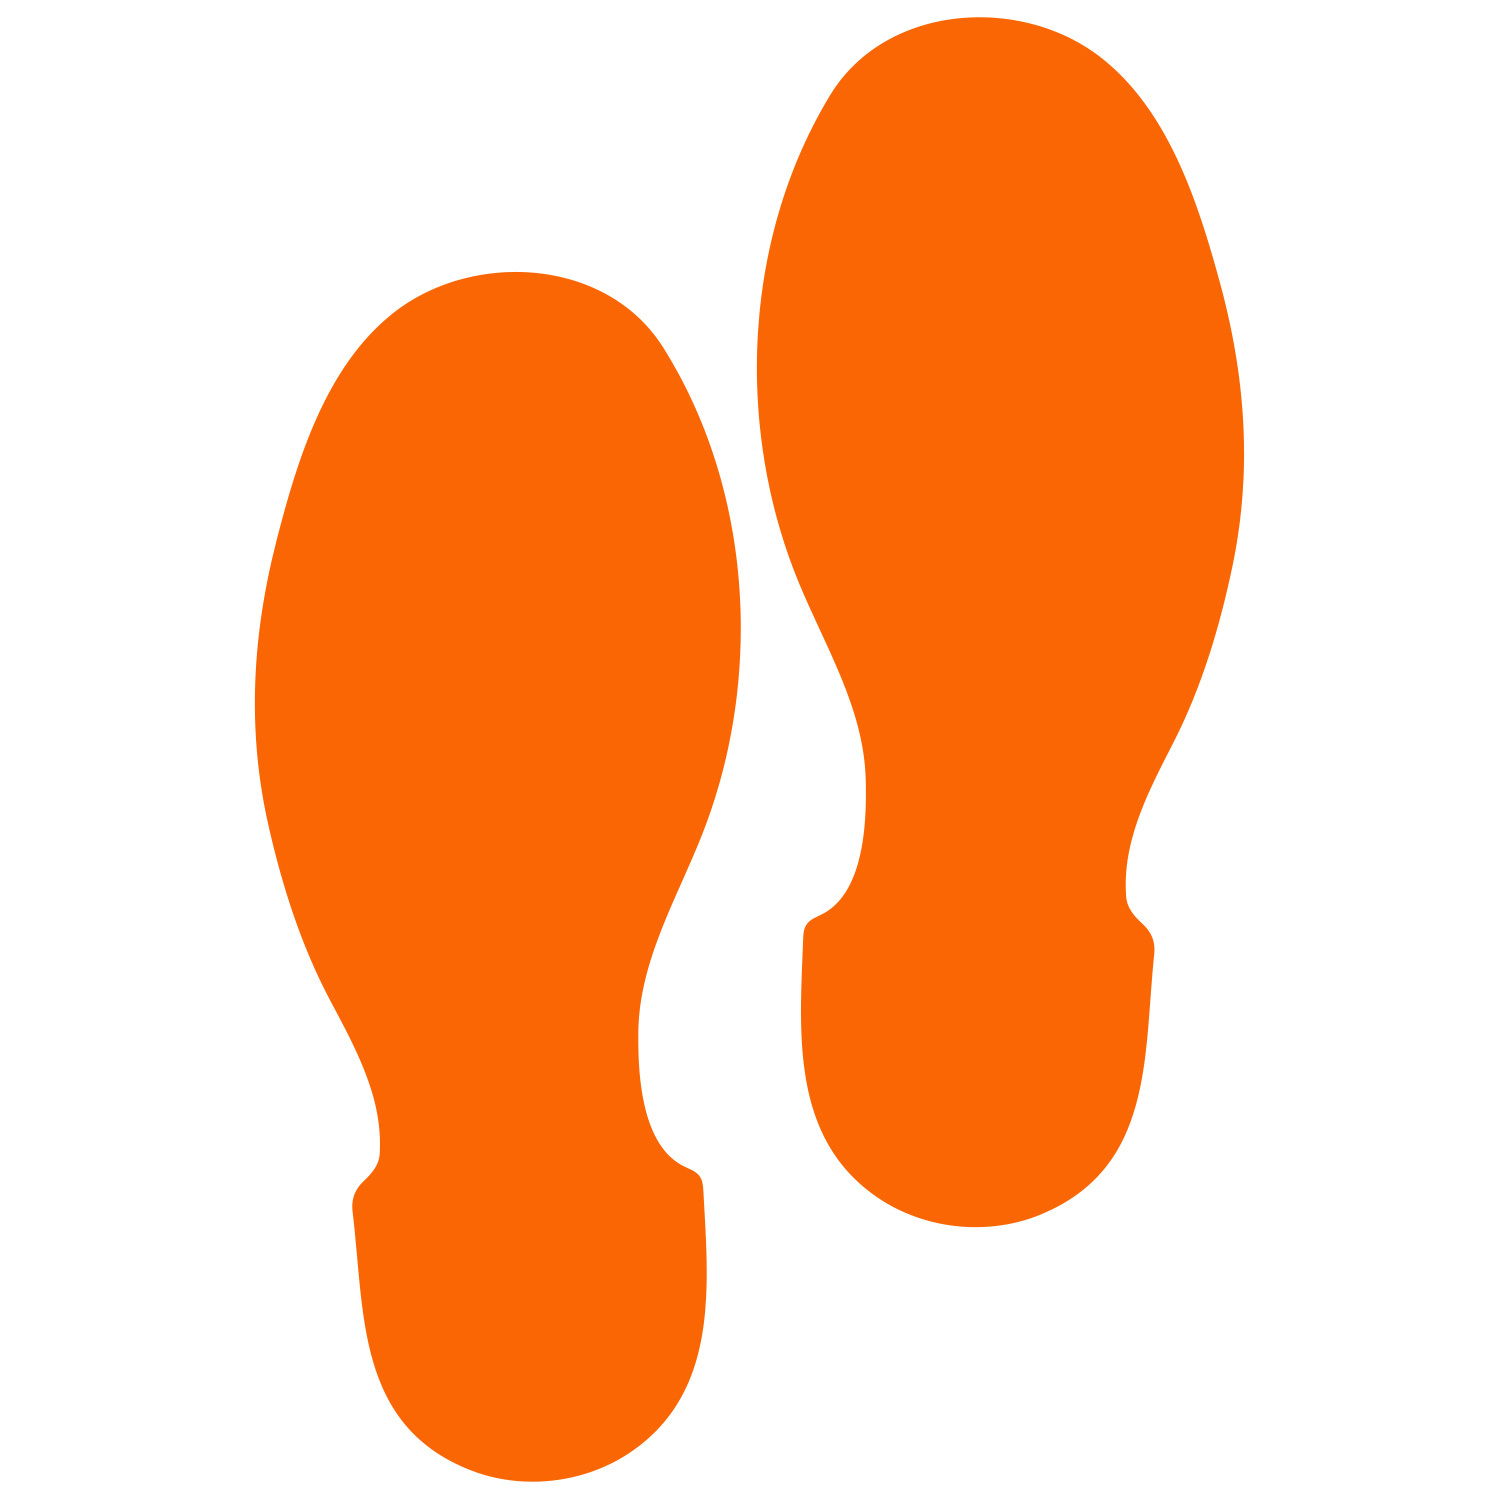 Primary image for LiteMark 9 Inch Orange Removable Shoe Print Decals for Floors and Walls 12 Pack